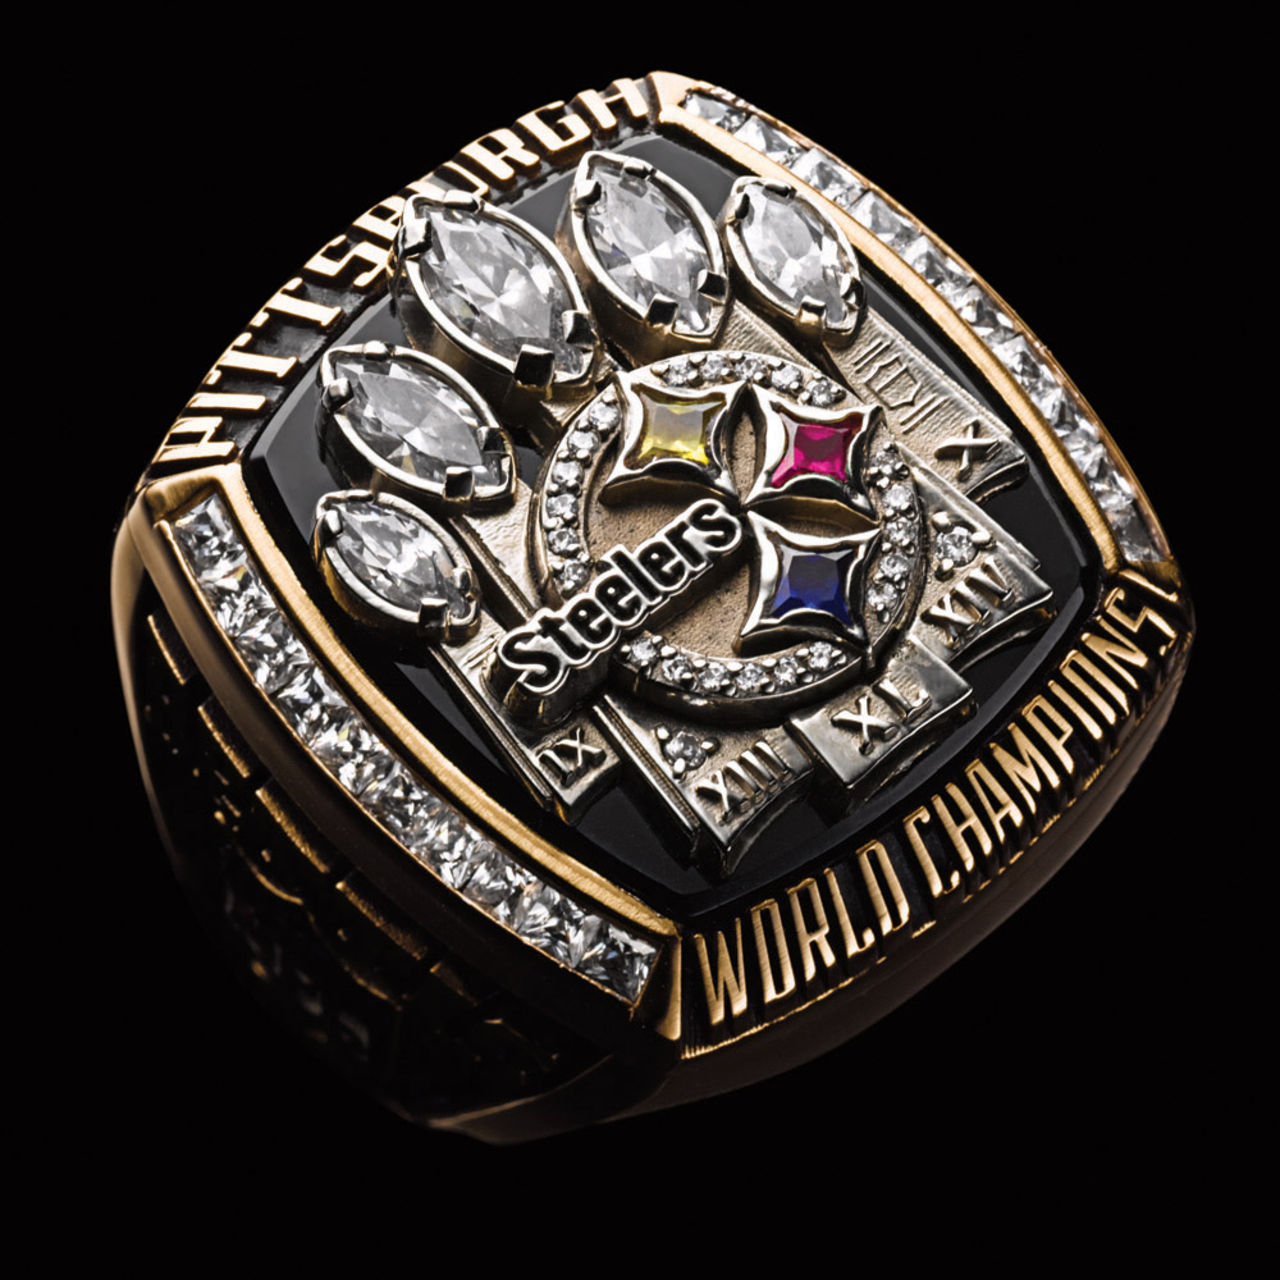 Pittsburgh Steelers 2006 champions ring